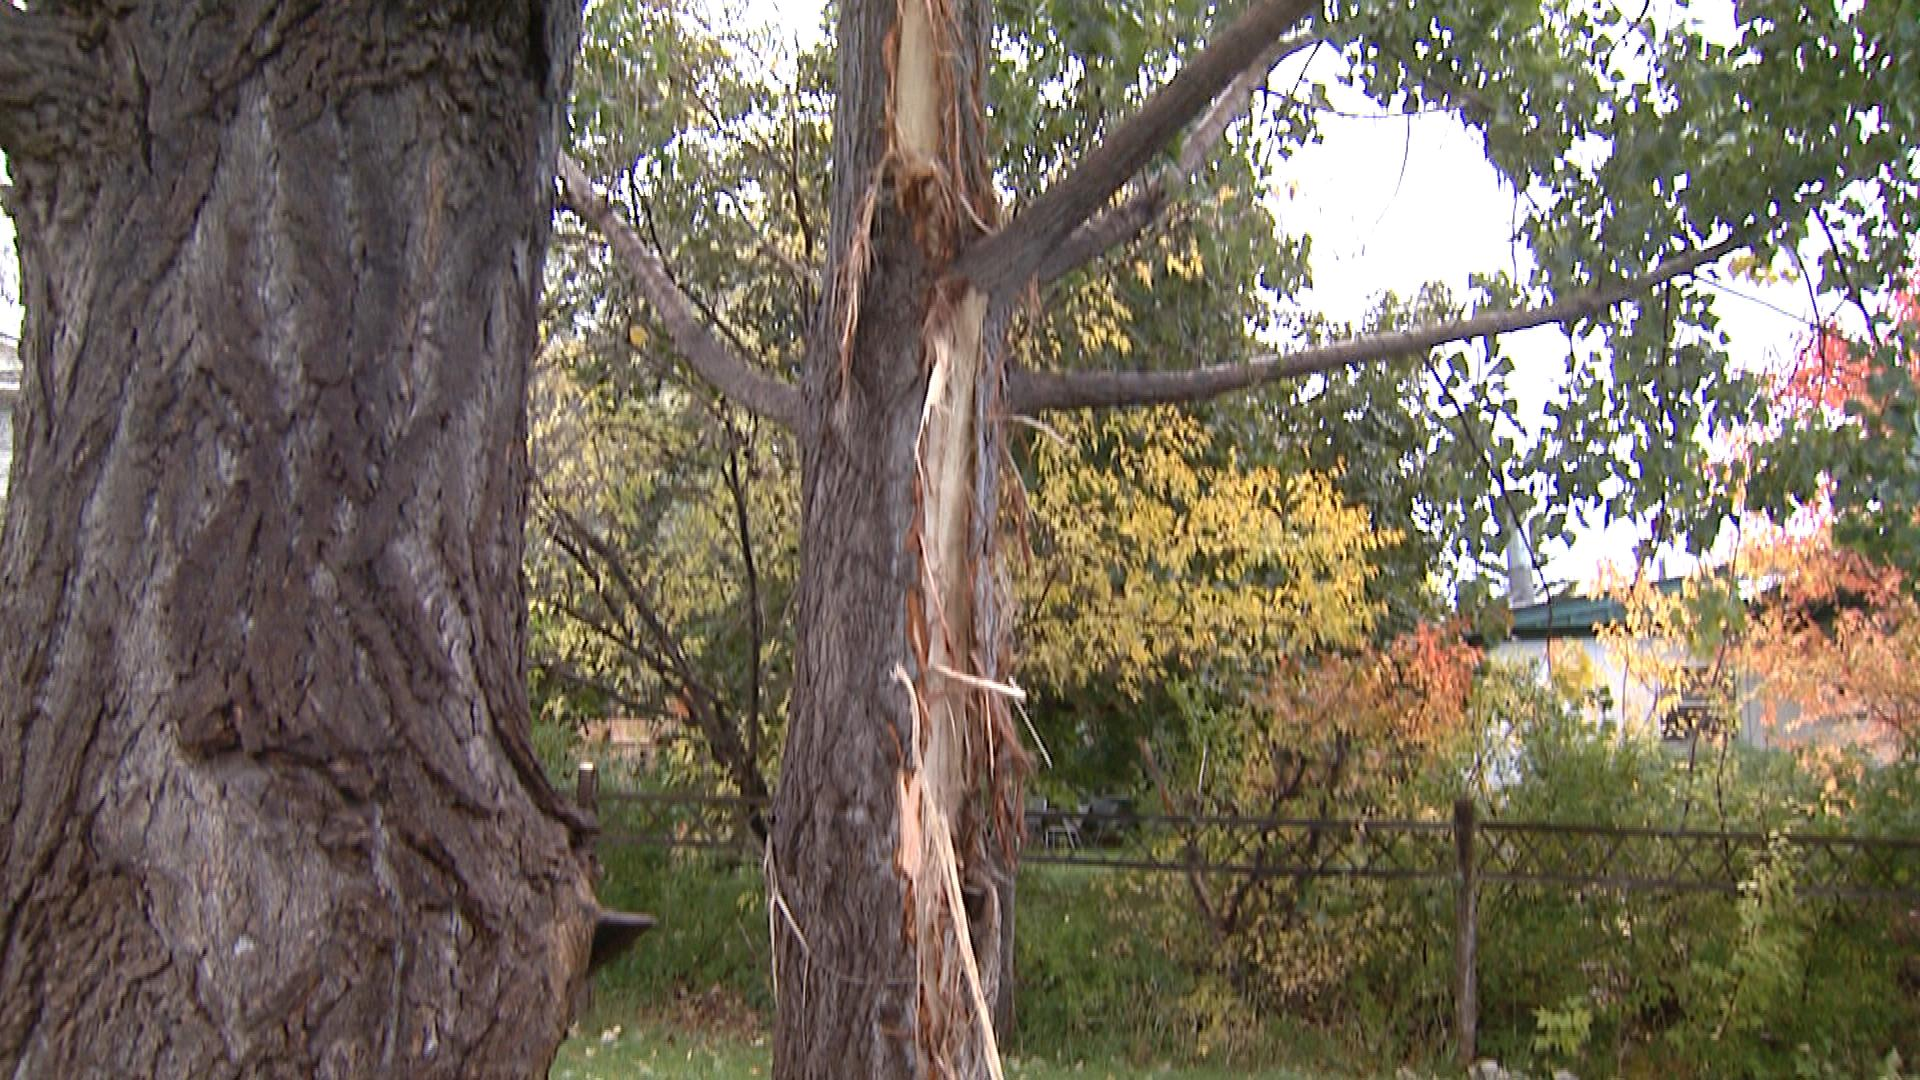 A tree struck by lightning behind Charlie Bennet's home (credit: CBS)